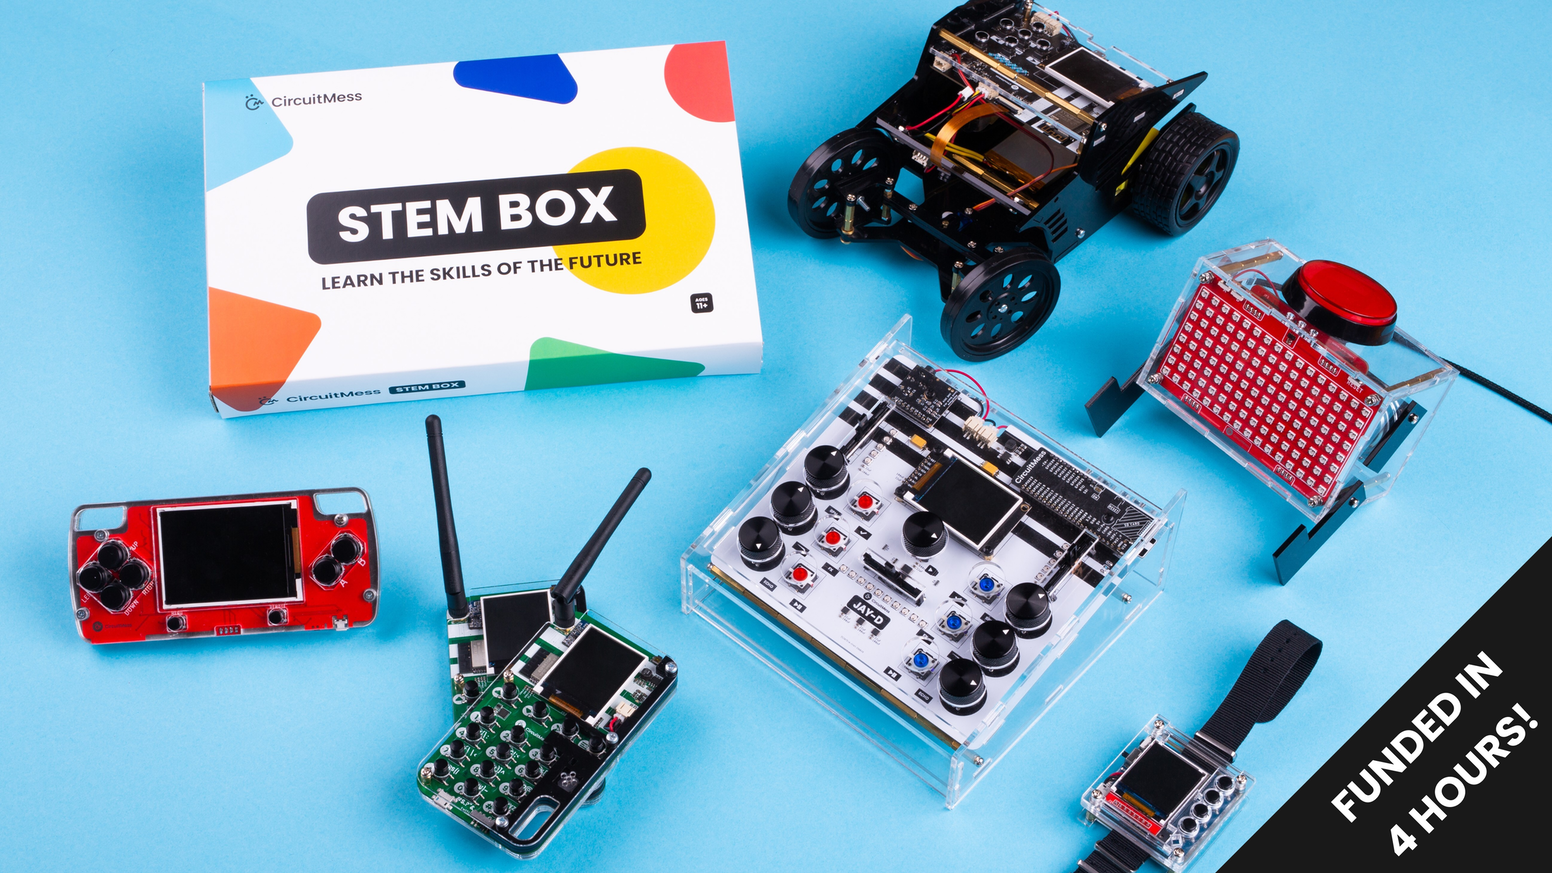 Learn the skills of the future with electronic projects delivered to your doorstep